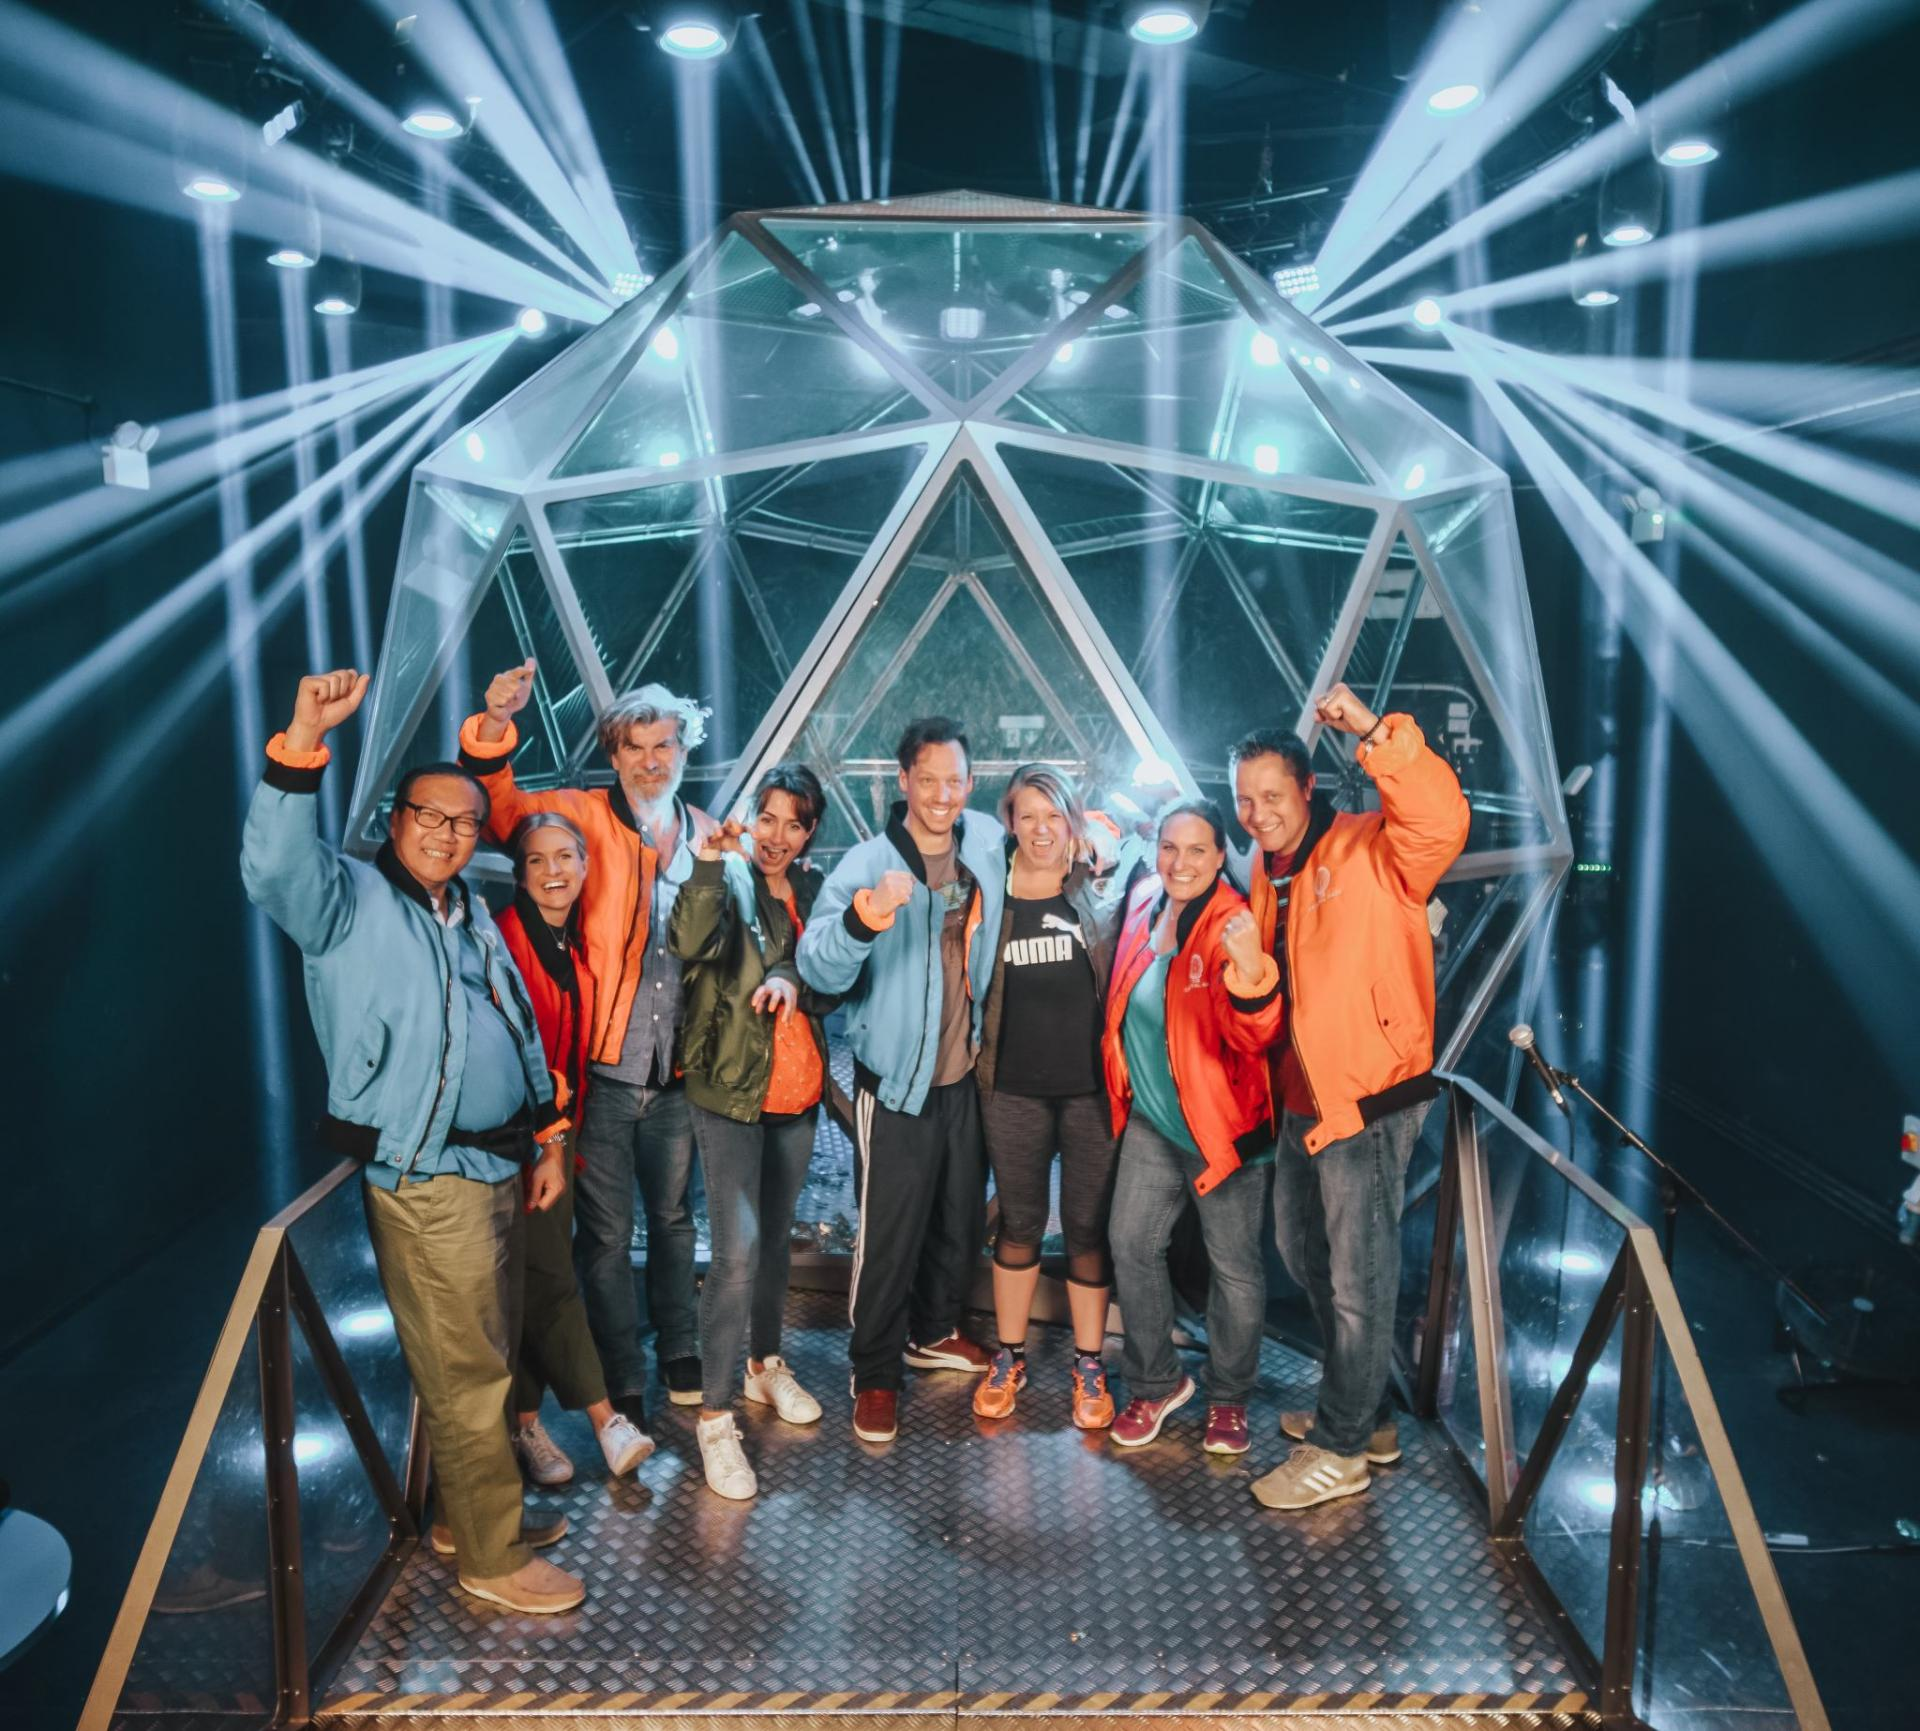 The Crystal Maze London